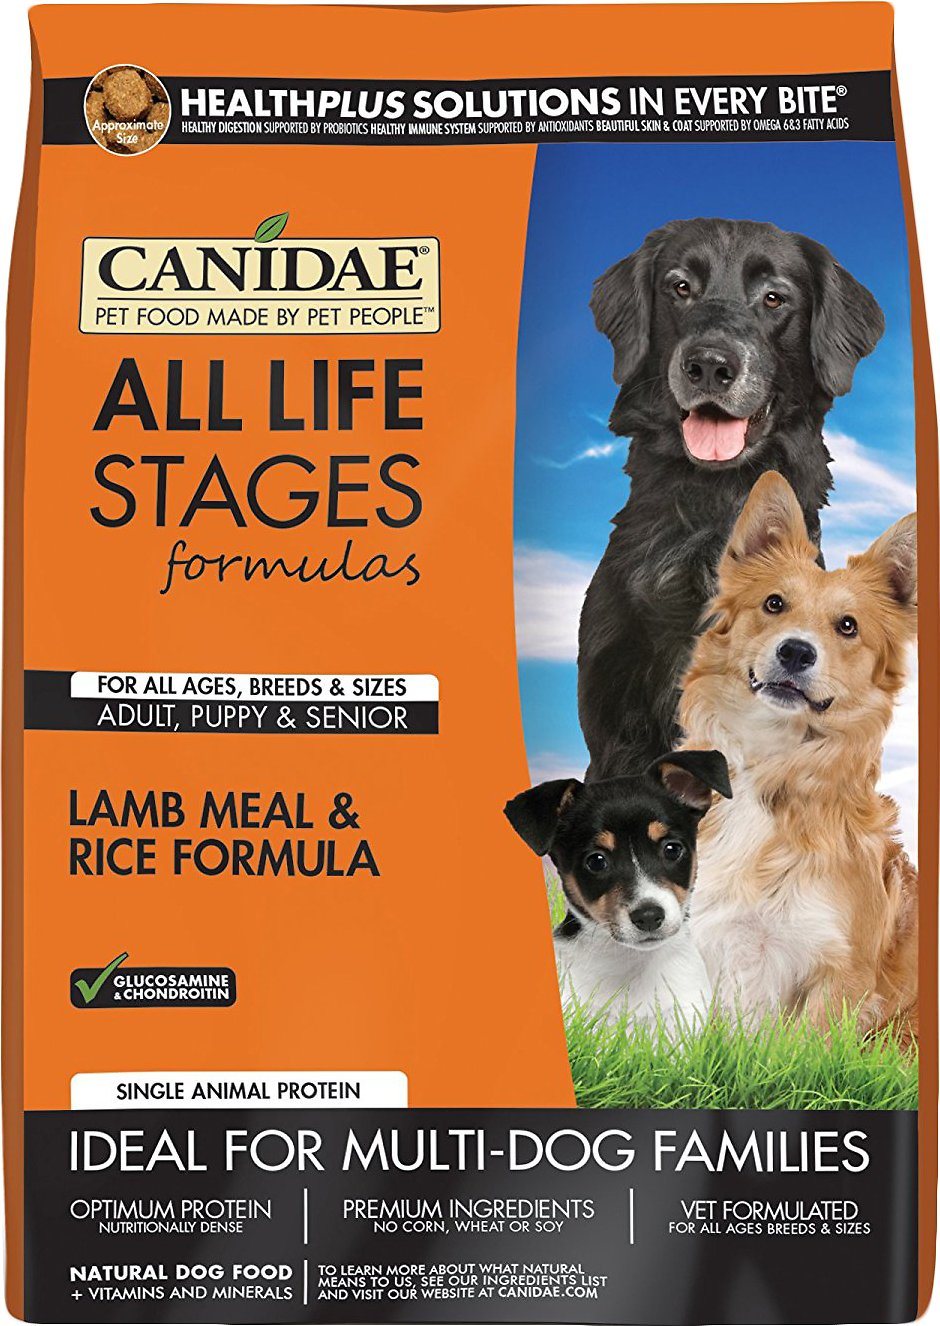 CANIDAE All Life Stages Lamb Meal & Rice Formula Dry Dog Food Image